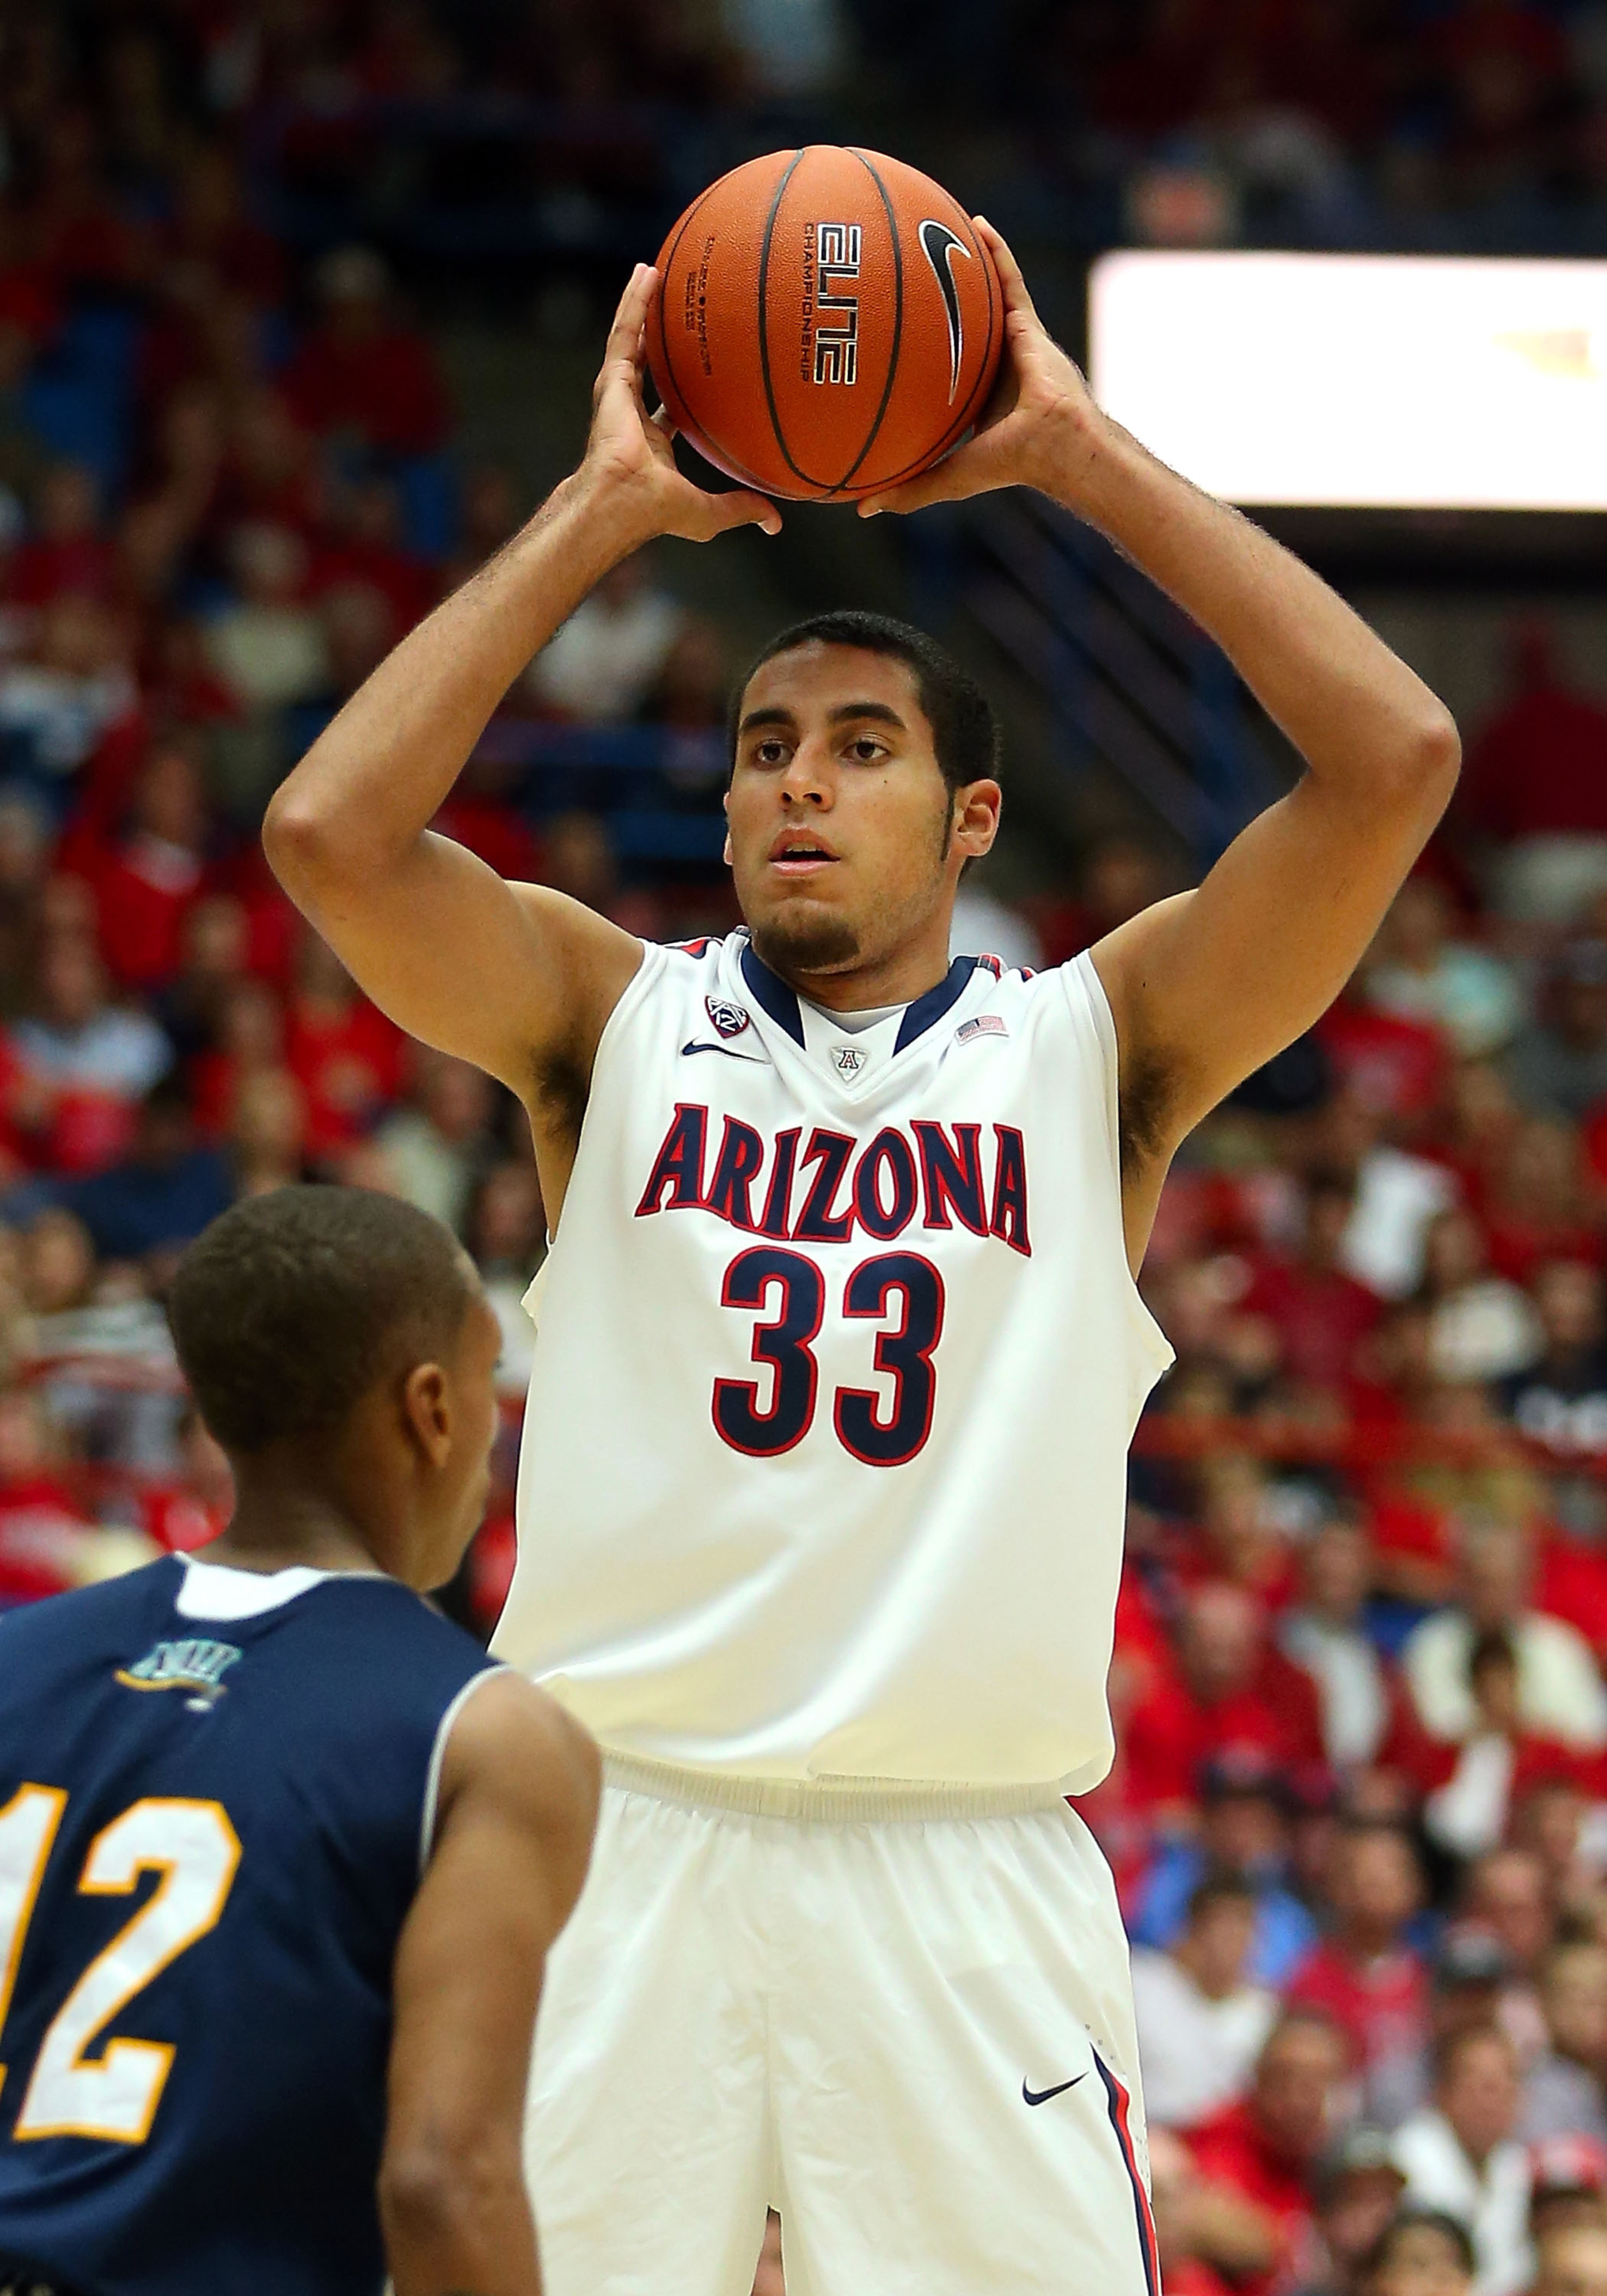 Former Arizona forward Grant Jerrett is projected in the second round range, but ESPN's Chad Ford thinks he can work his way into being a first-round pick.